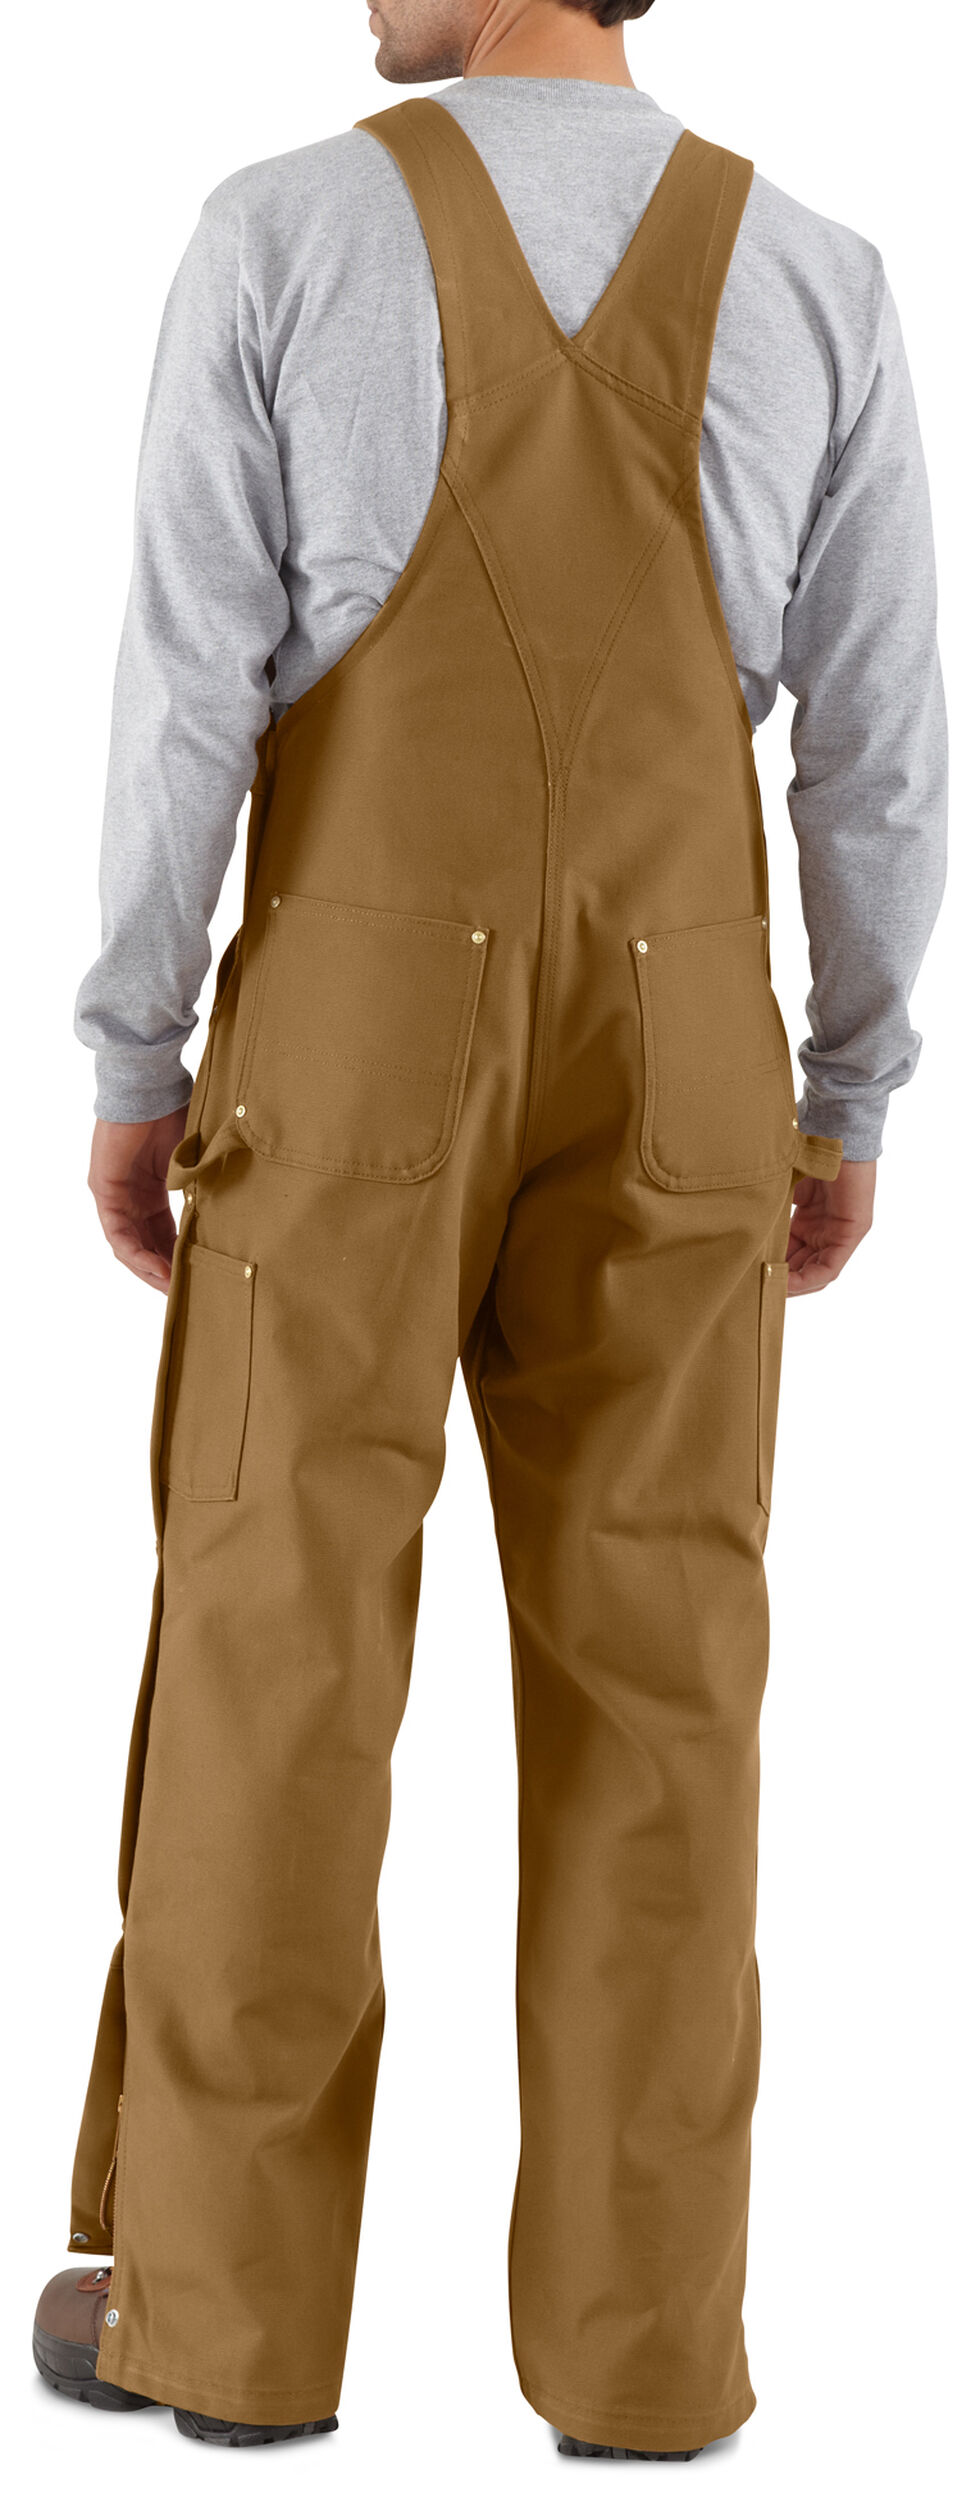 Carhartt Zip-to-Thigh Work Overalls, Carhartt Brown, hi-res